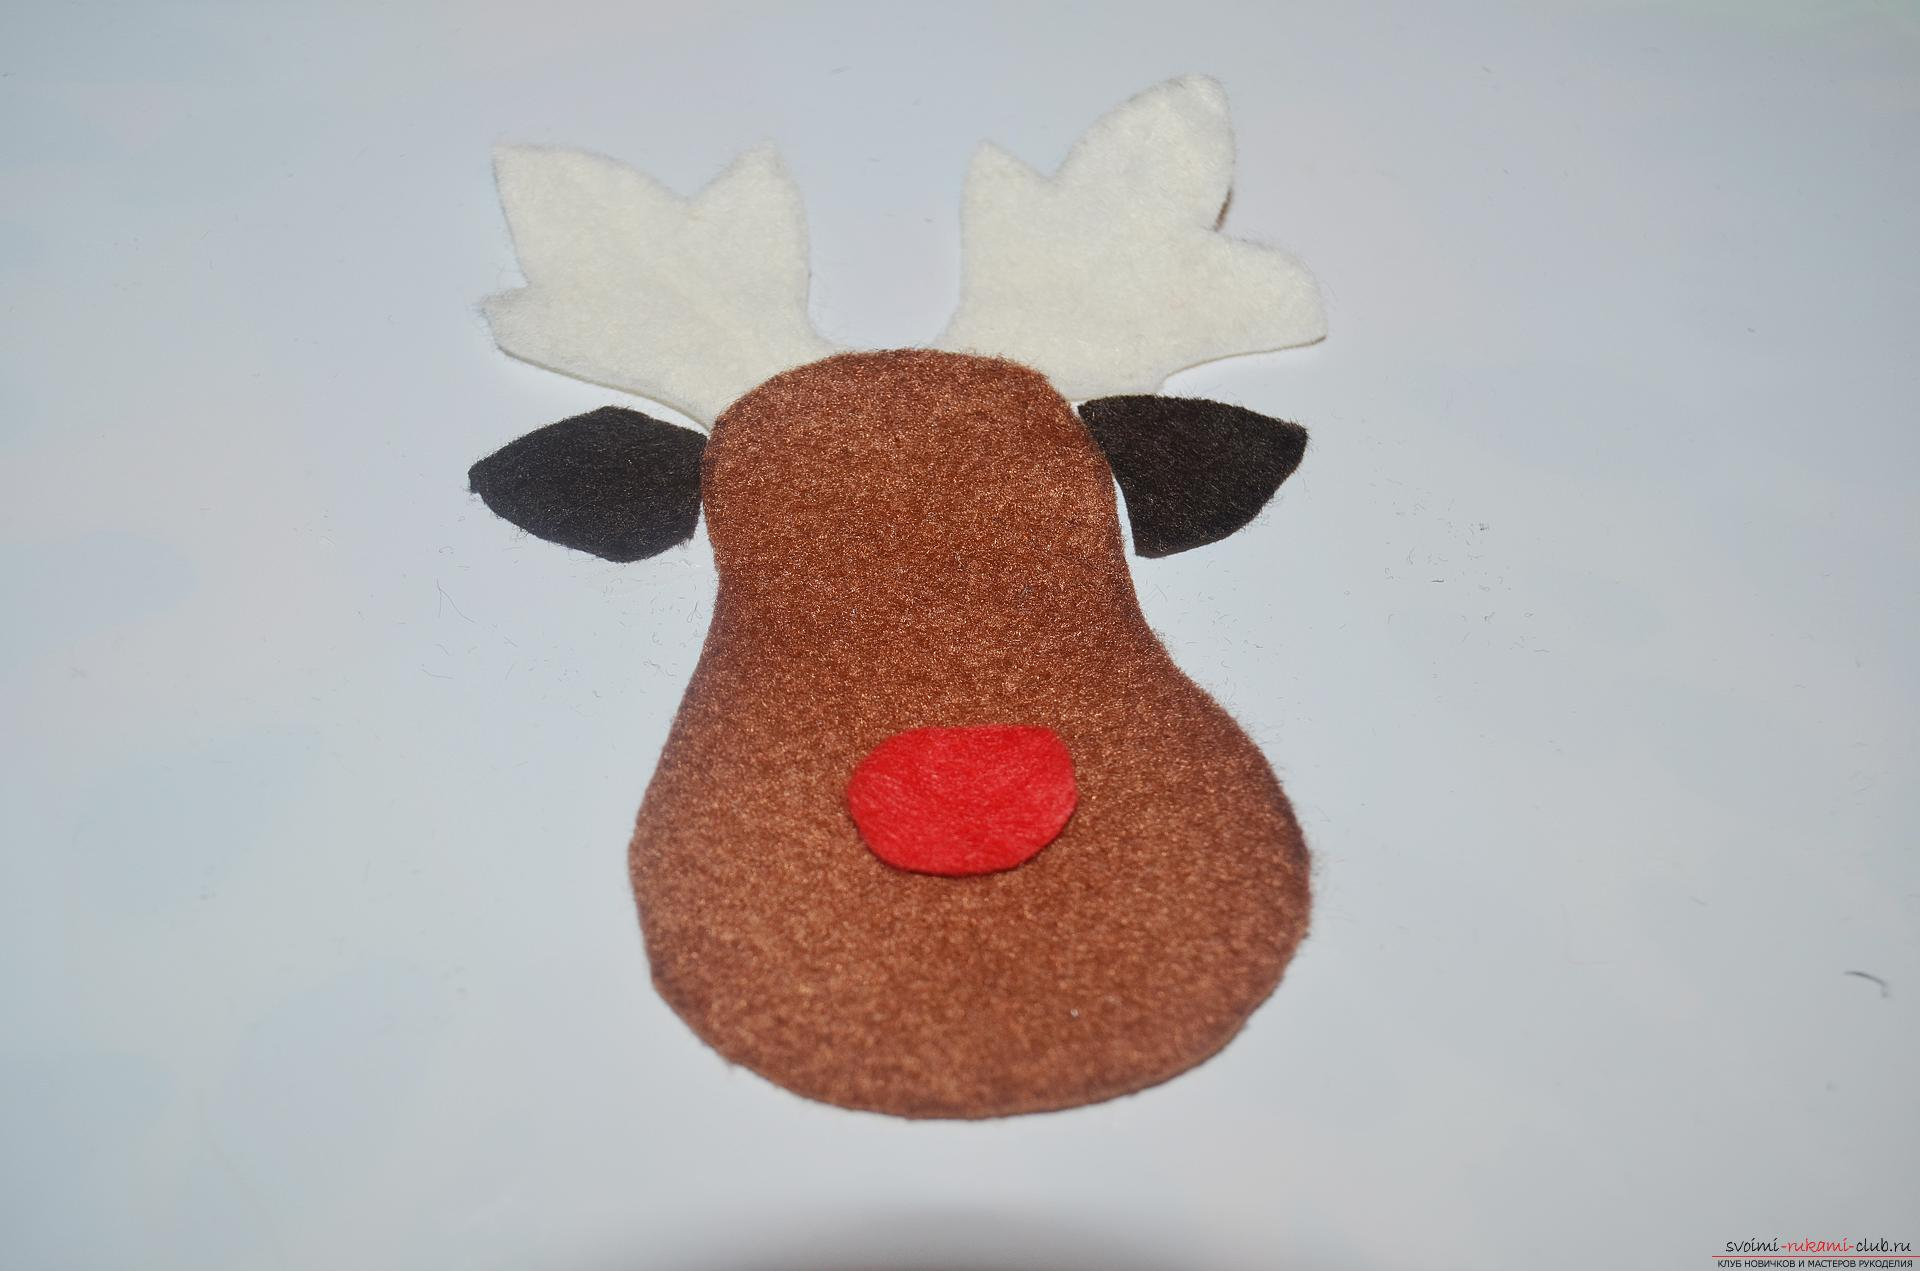 In the New Year 2016 you need to decorate the Christmas tree with a special New Year toy, such as a Christmas boot. New Year's hand-made articles are made of simple felt. Photo # 5